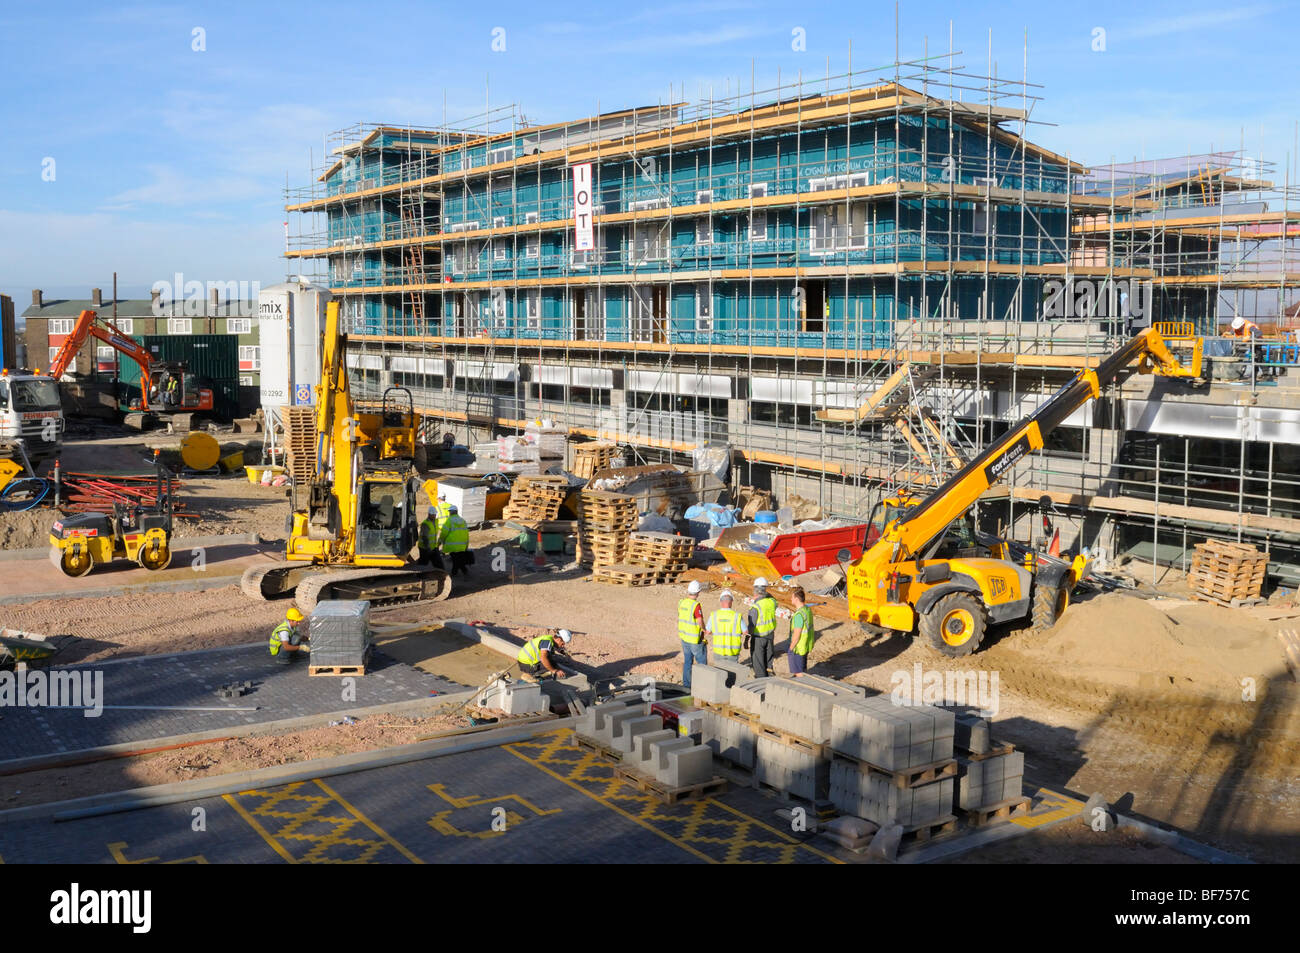 Laying block paving on building site for new Lidl supermarket Croydon Surrey England UK - Stock Image